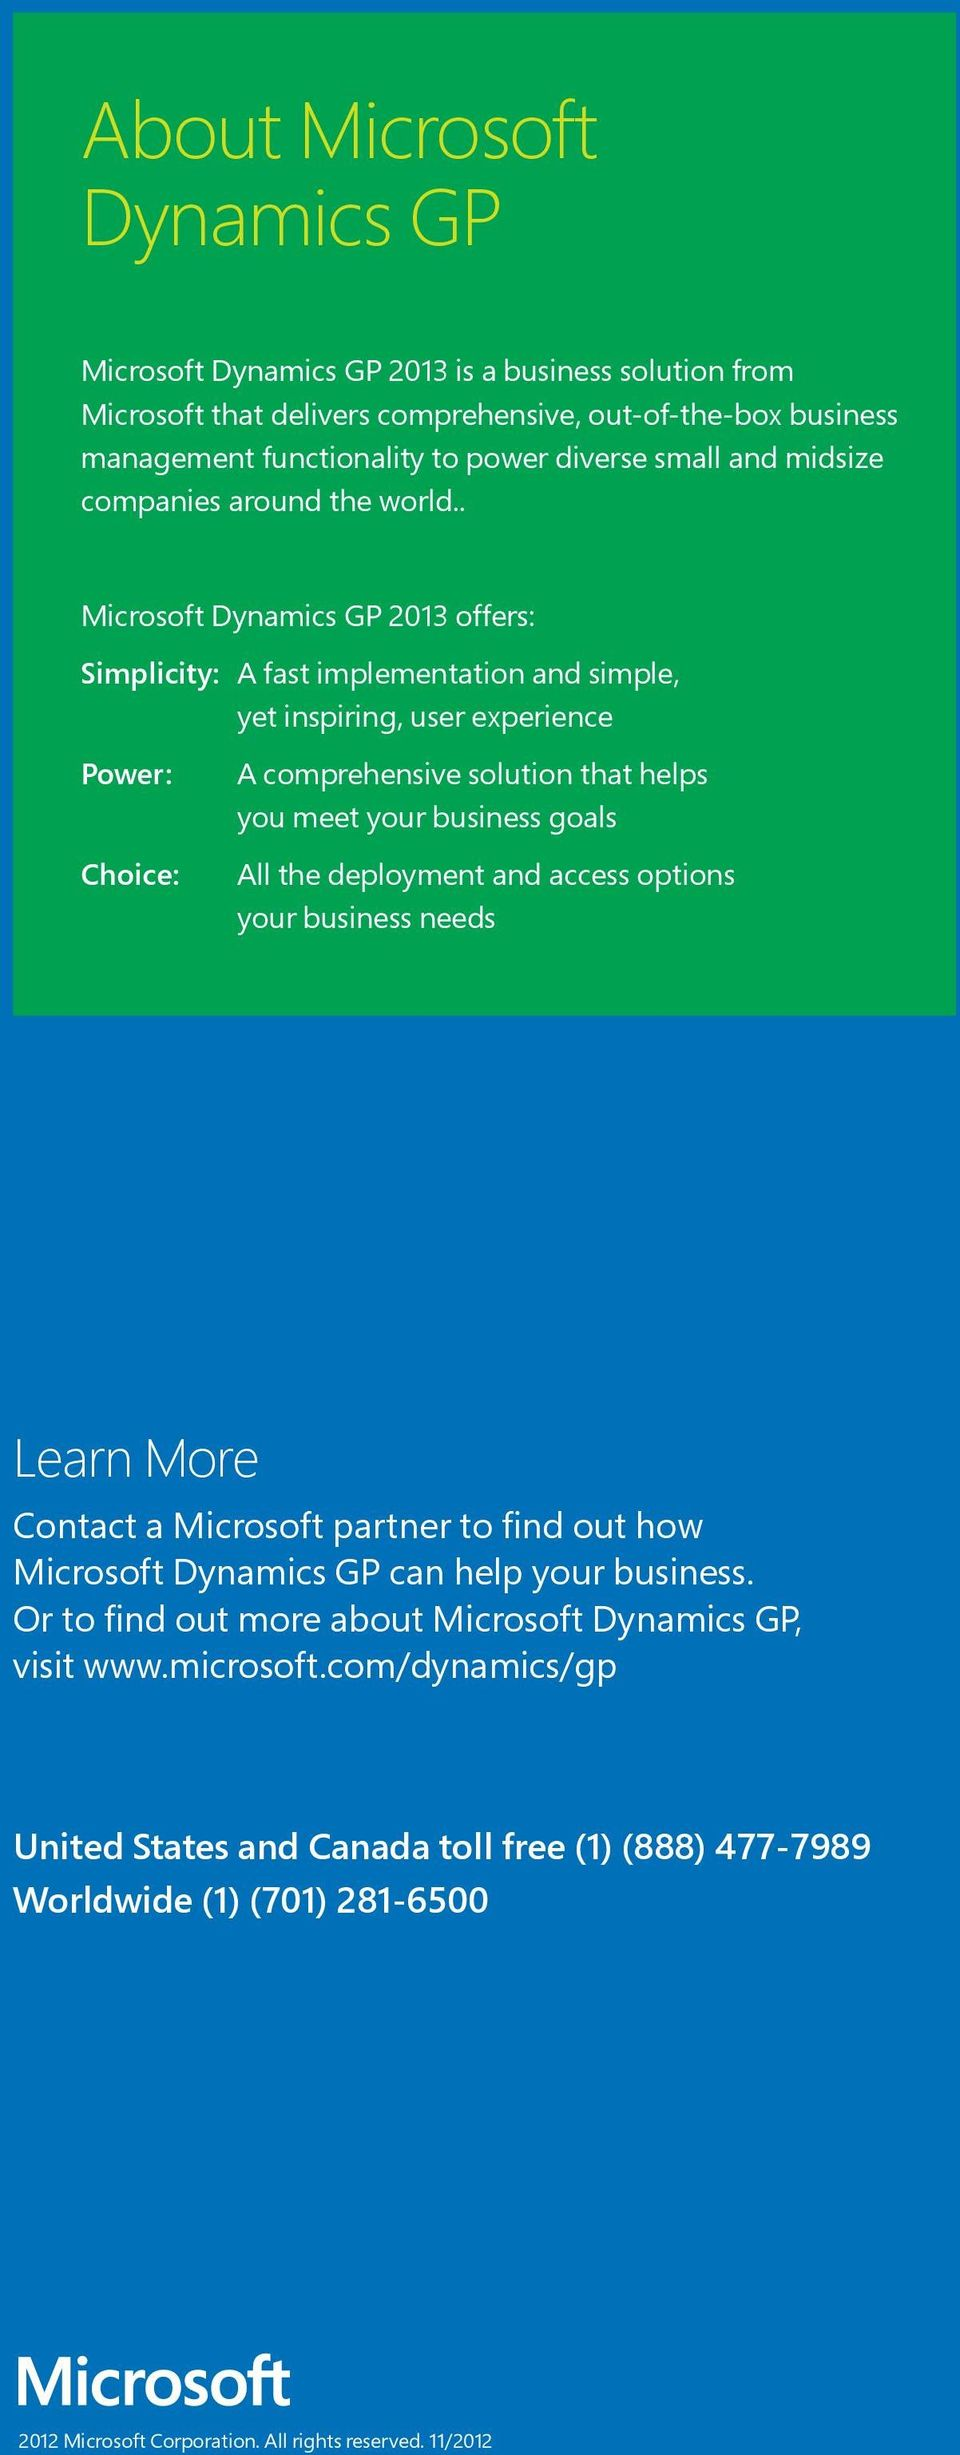 . Microsoft Dynamics GP 2013 offers: Simplicity: A fast implementation and simple, yet inspiring, user experience Power: Choice: A comprehensive solution that helps you meet your business goals All